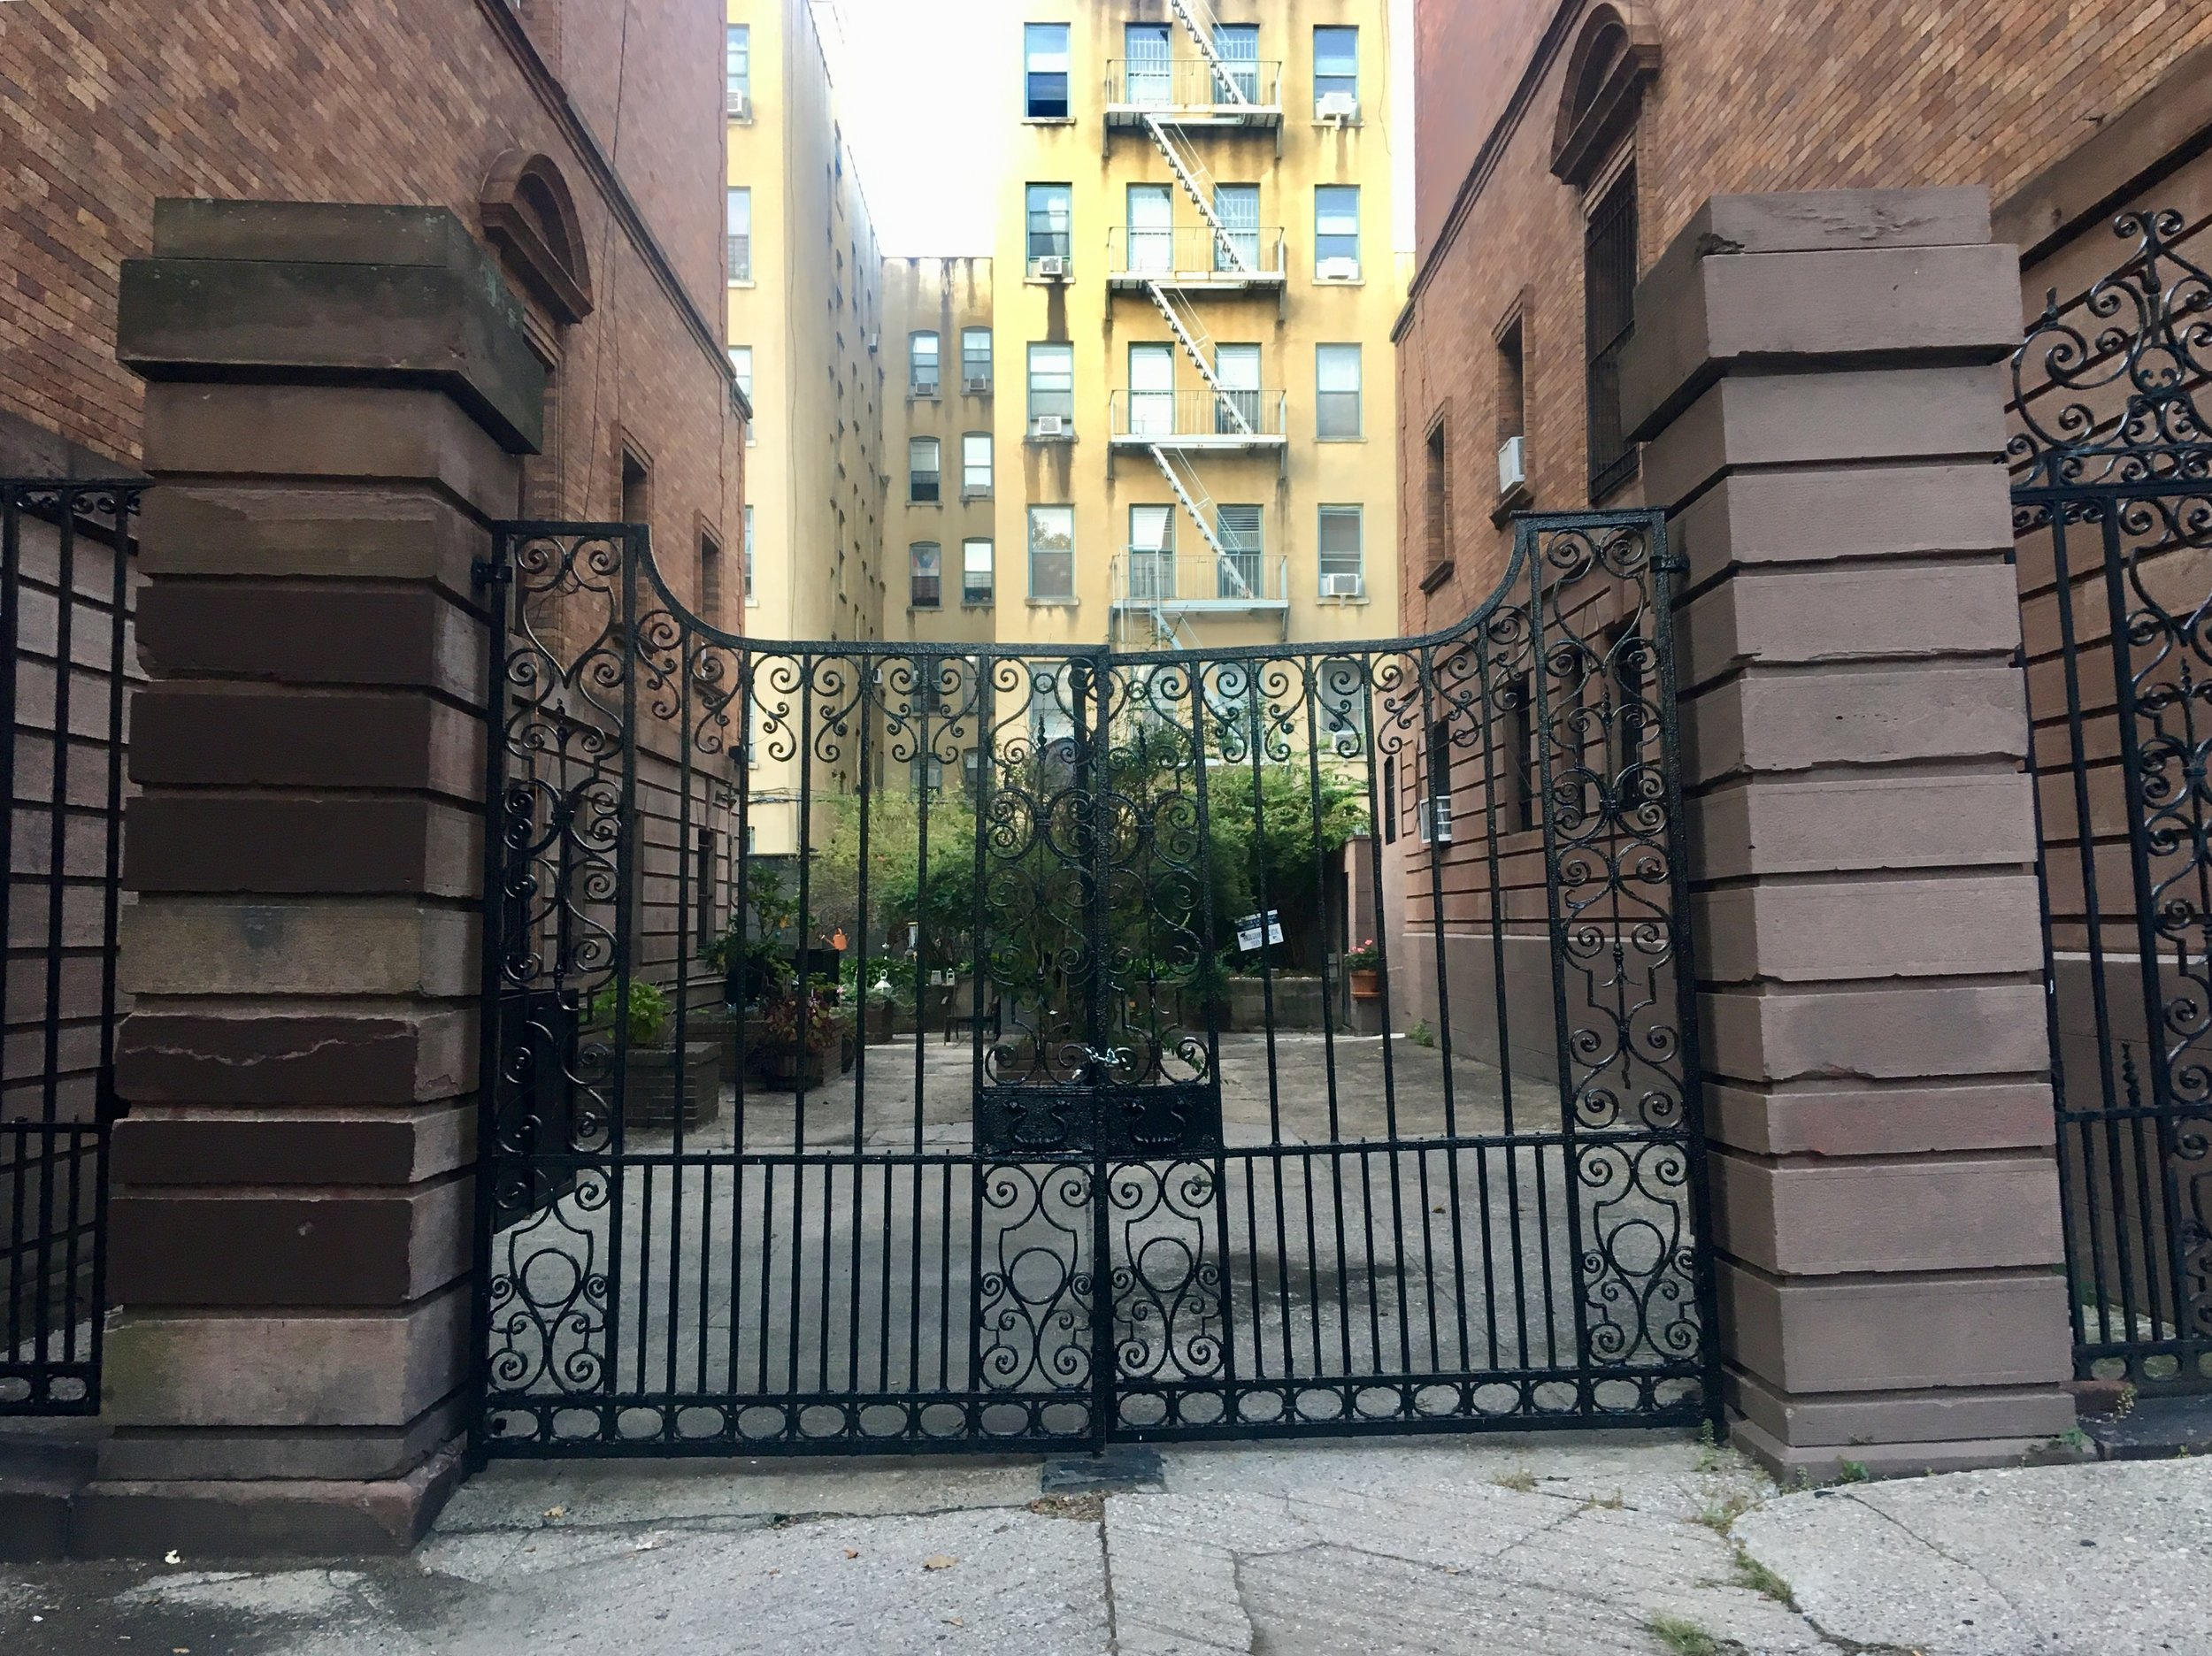 Photos from my  'Black As Eastcoast ' summer 2019 tour  Alleys are very rare in NYC, the houses have alleyways which were used as stalls for horses and private delivery. Today these are used for parking, another rarity in NYC.